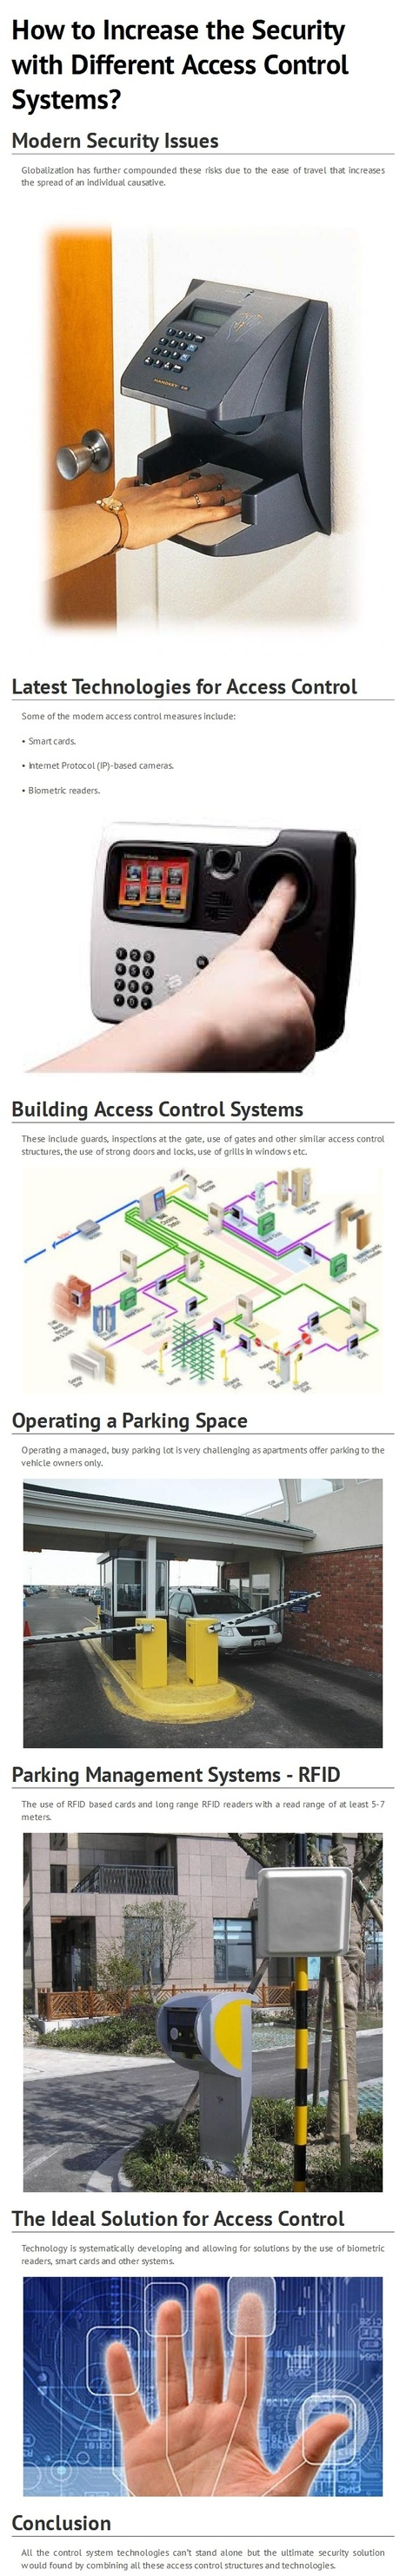 Enhanced Securities with Different Access Control Systems By www.globalkeyaccess.com | Global Keyaccess Technologies Ltd. | Scoop.it